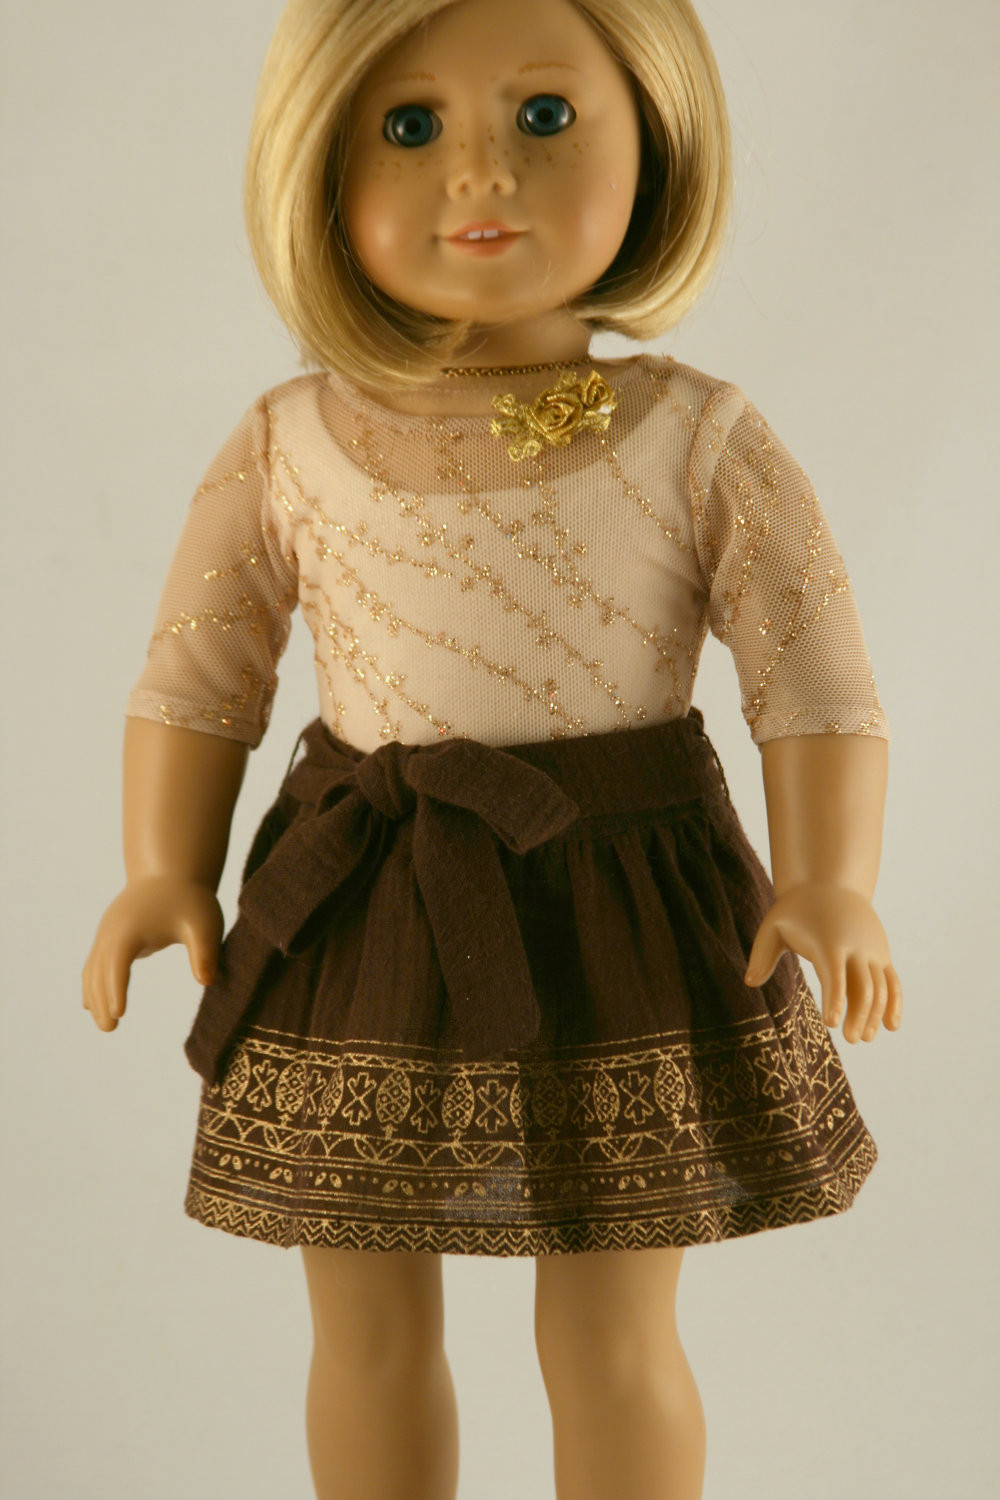 New American Girl Doll Clothes Printed Gauze Skirt Sheer Gold American Girl Doll Skirts Of Incredible 50 Ideas American Girl Doll Skirts